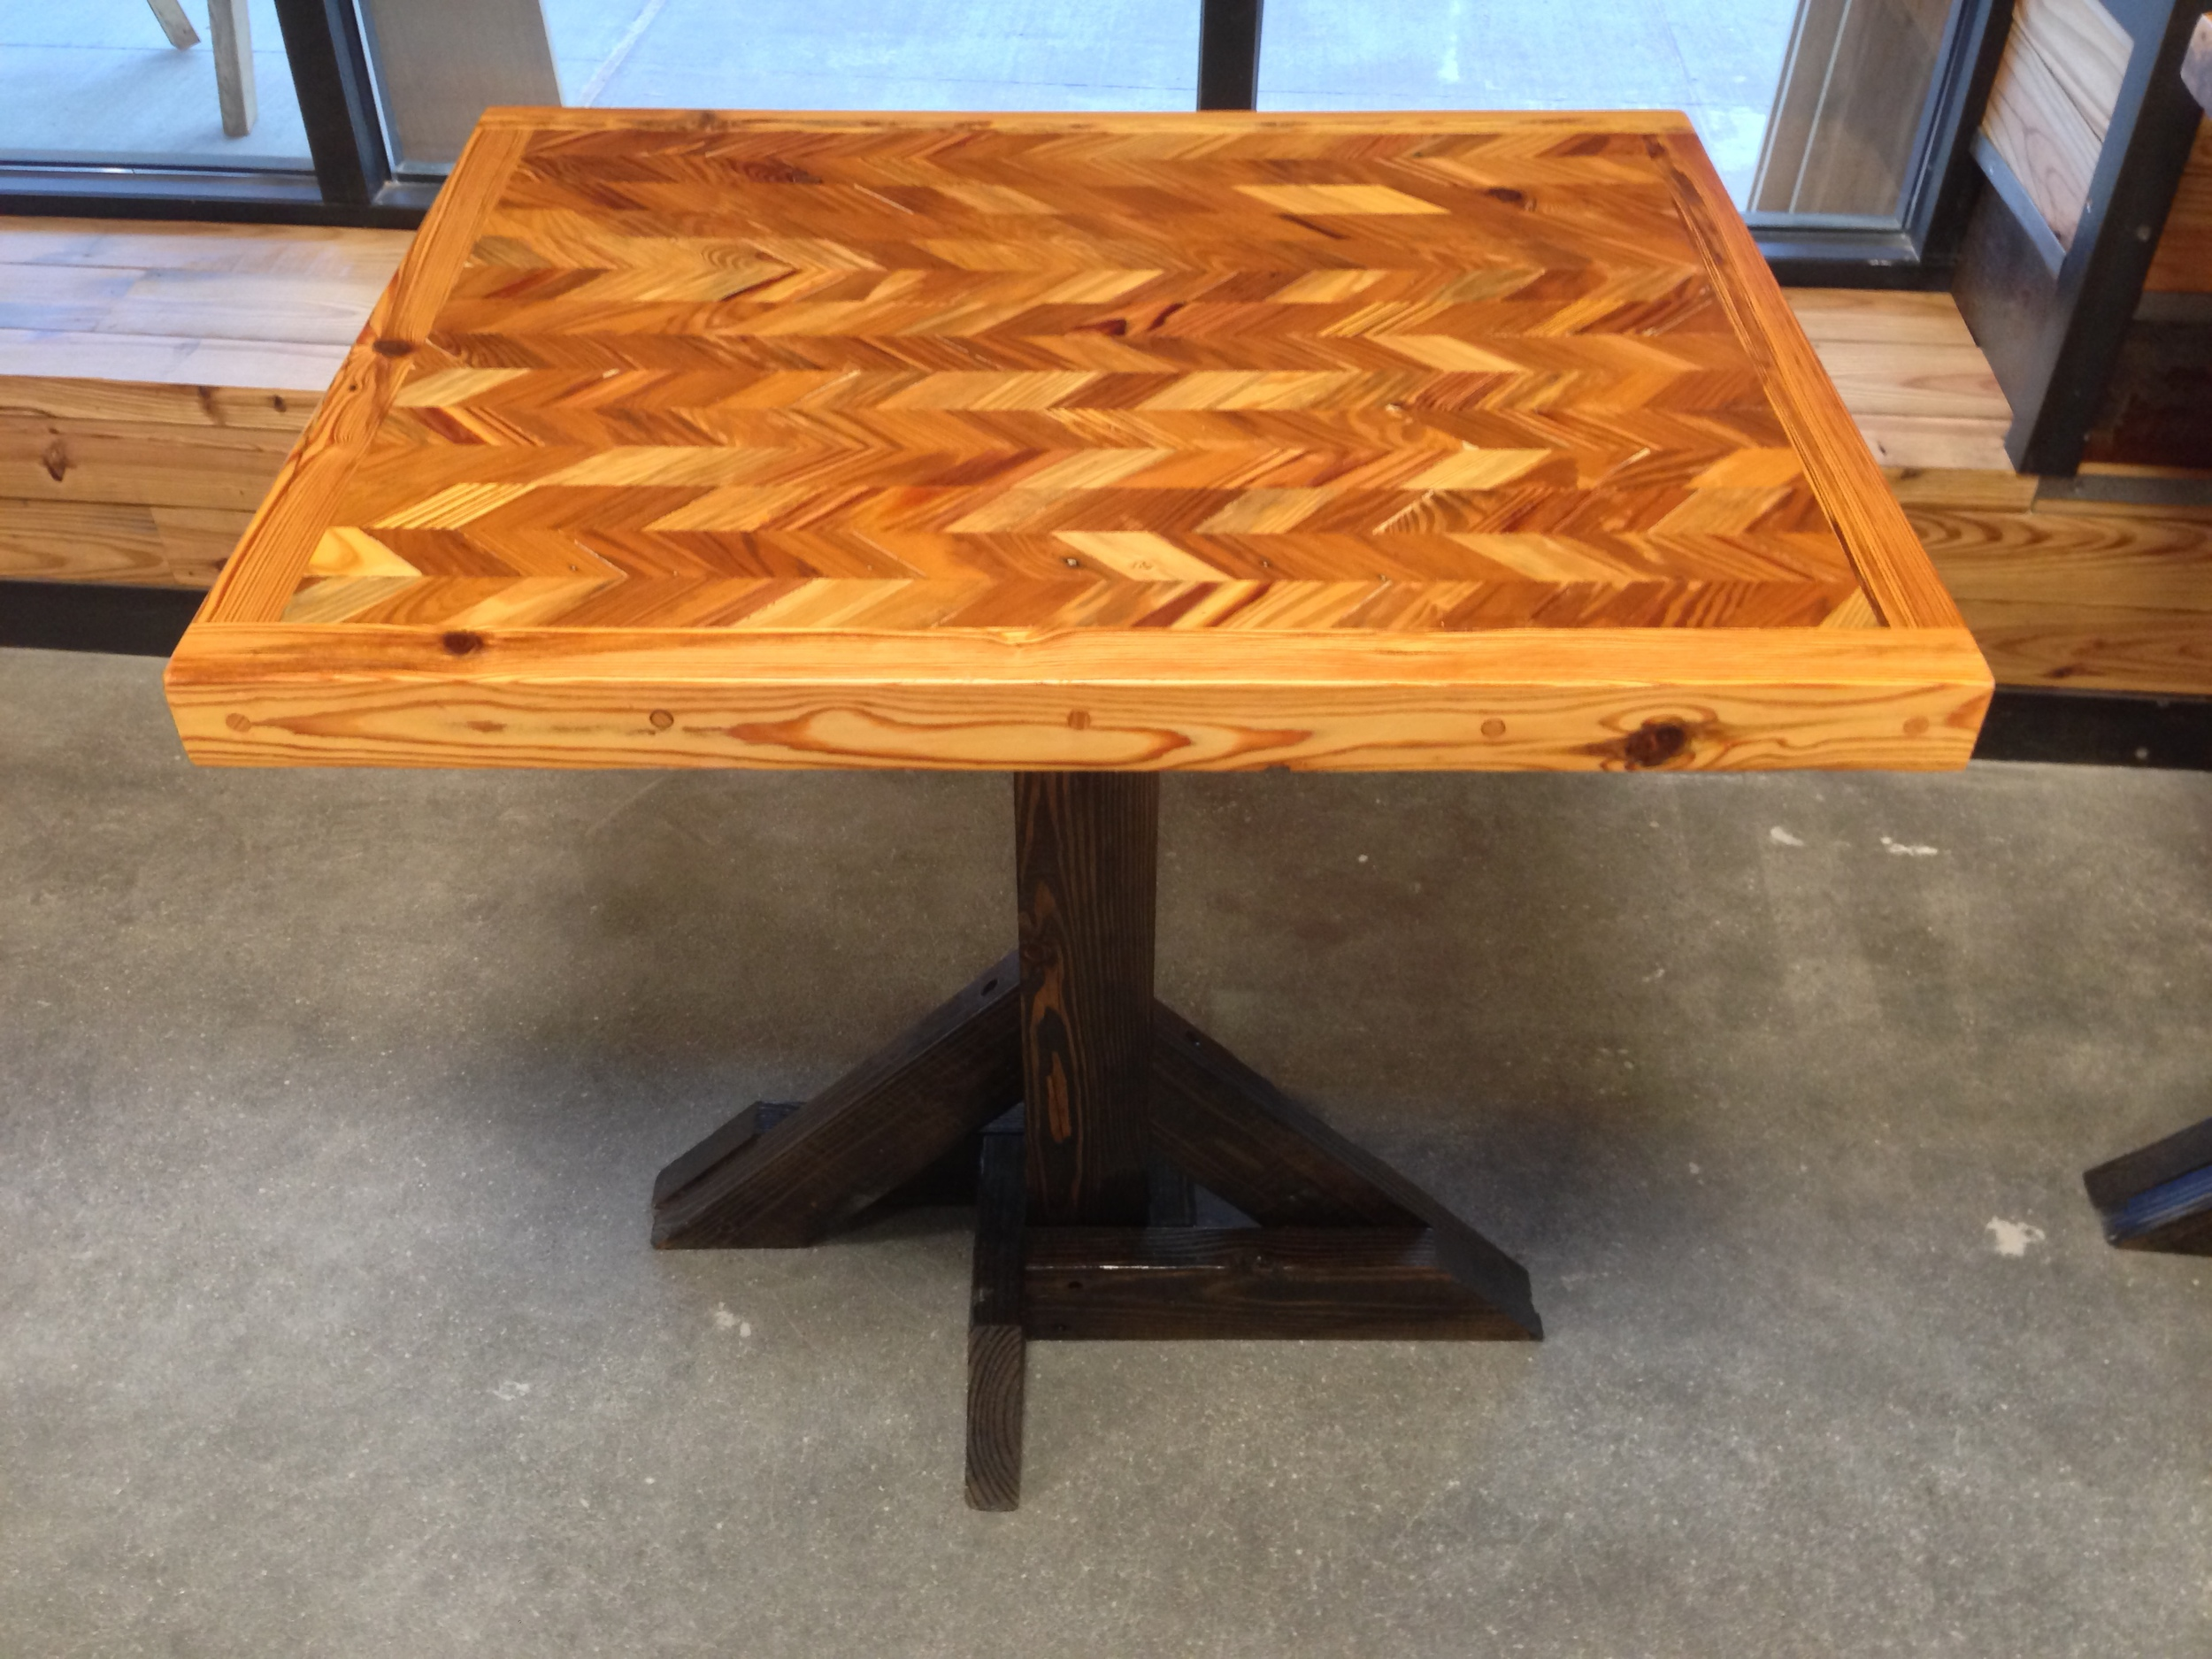 Heart Pine Mosaic two-top table